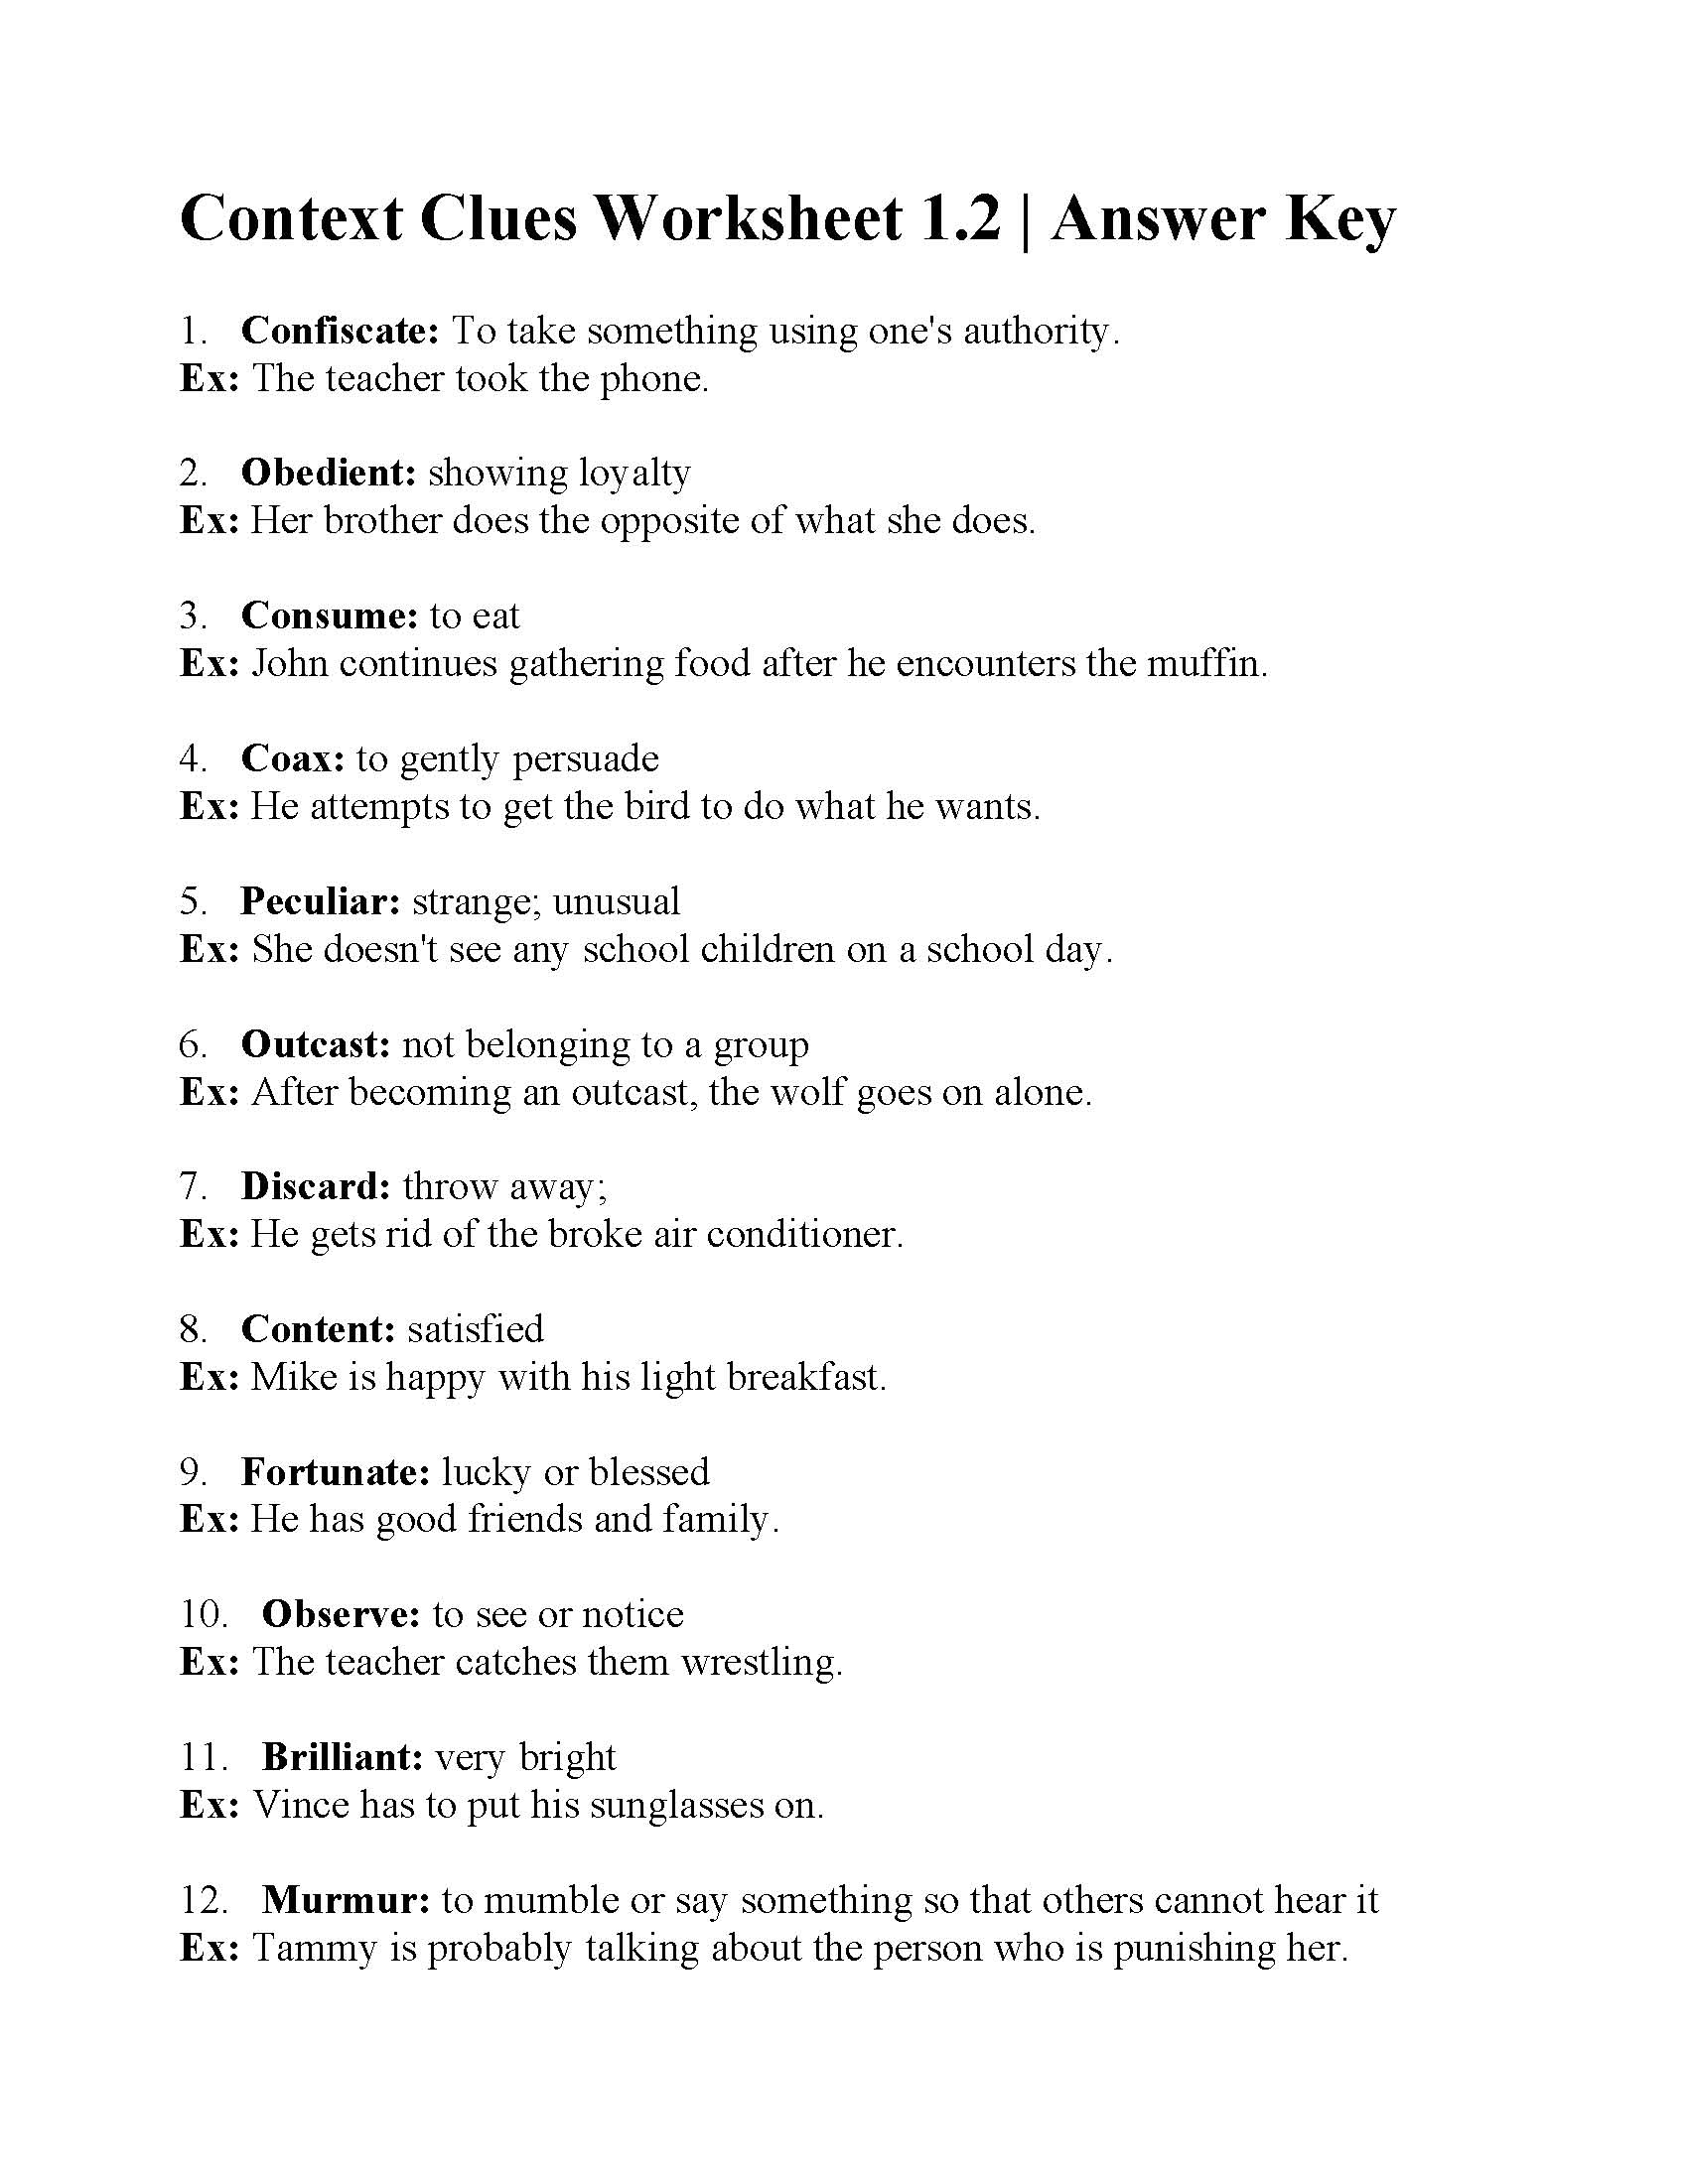 Context Clues Worksheet Grade 6